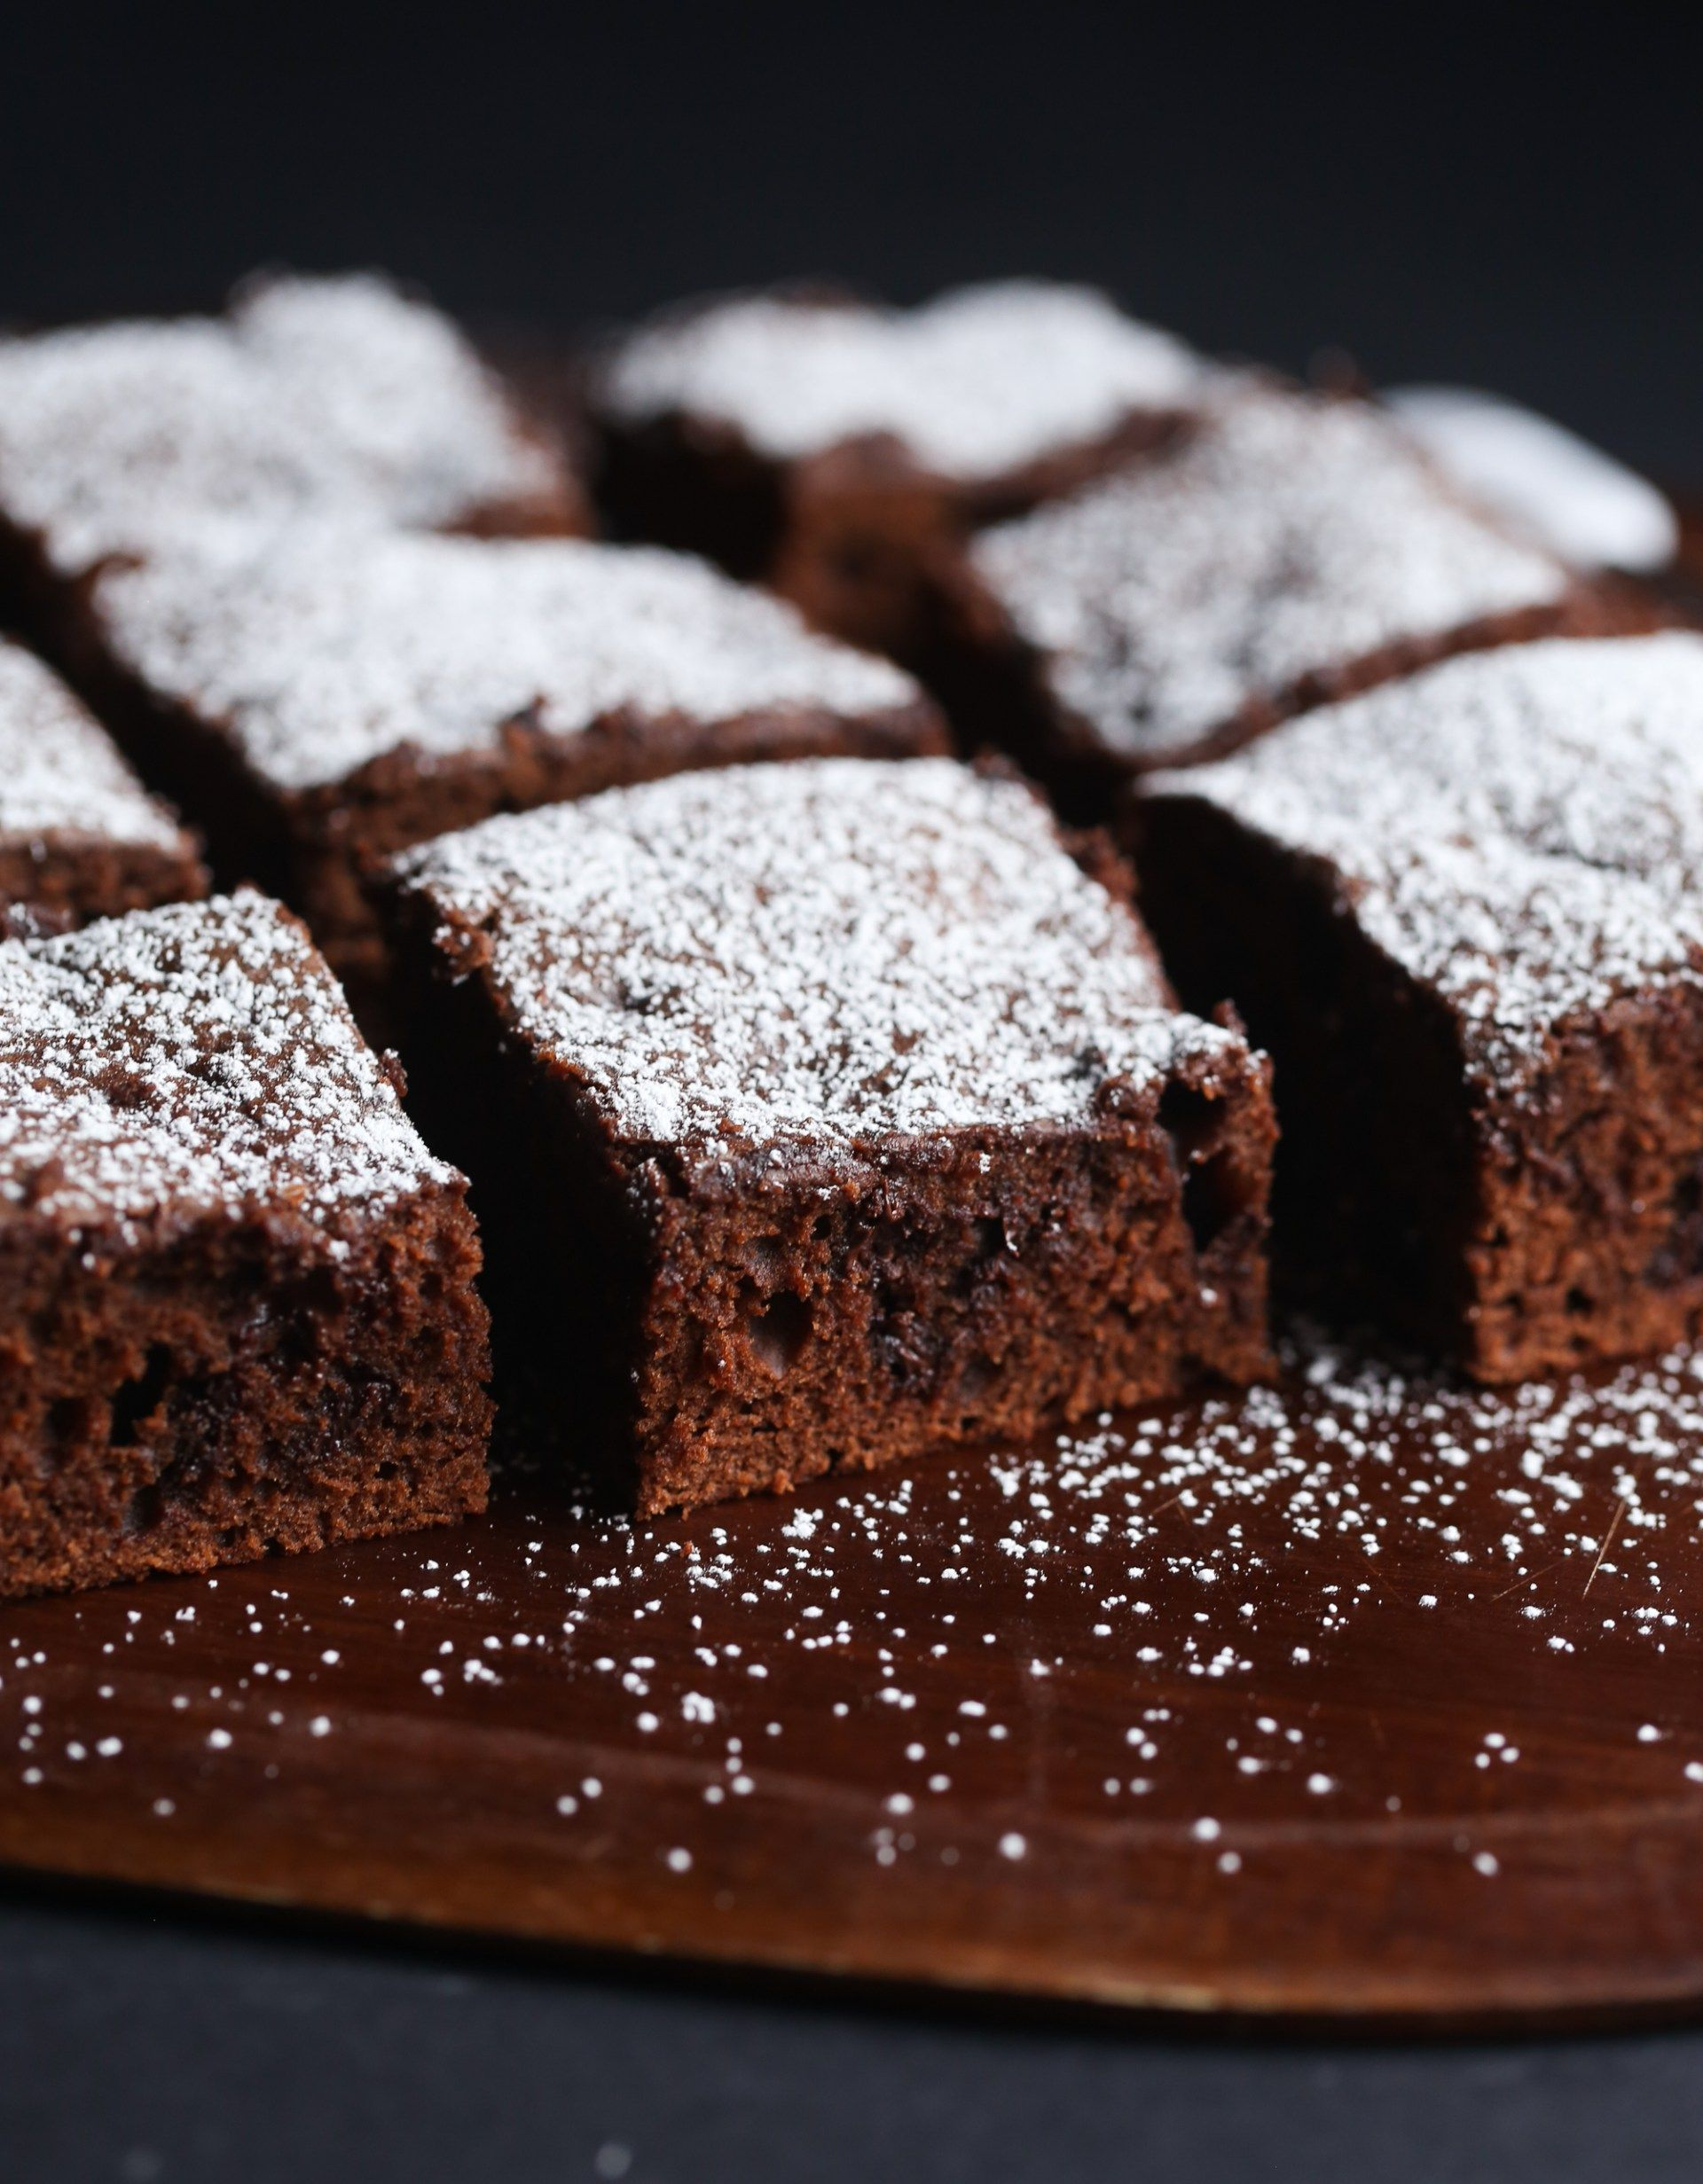 Sour Cream Chocolate Cake Is A Simple Classic Cake That Can Be Frosted Or Dust Sour Cream Chocolate Cake Amazing Chocolate Cake Recipe Homemade Chocolate Cake